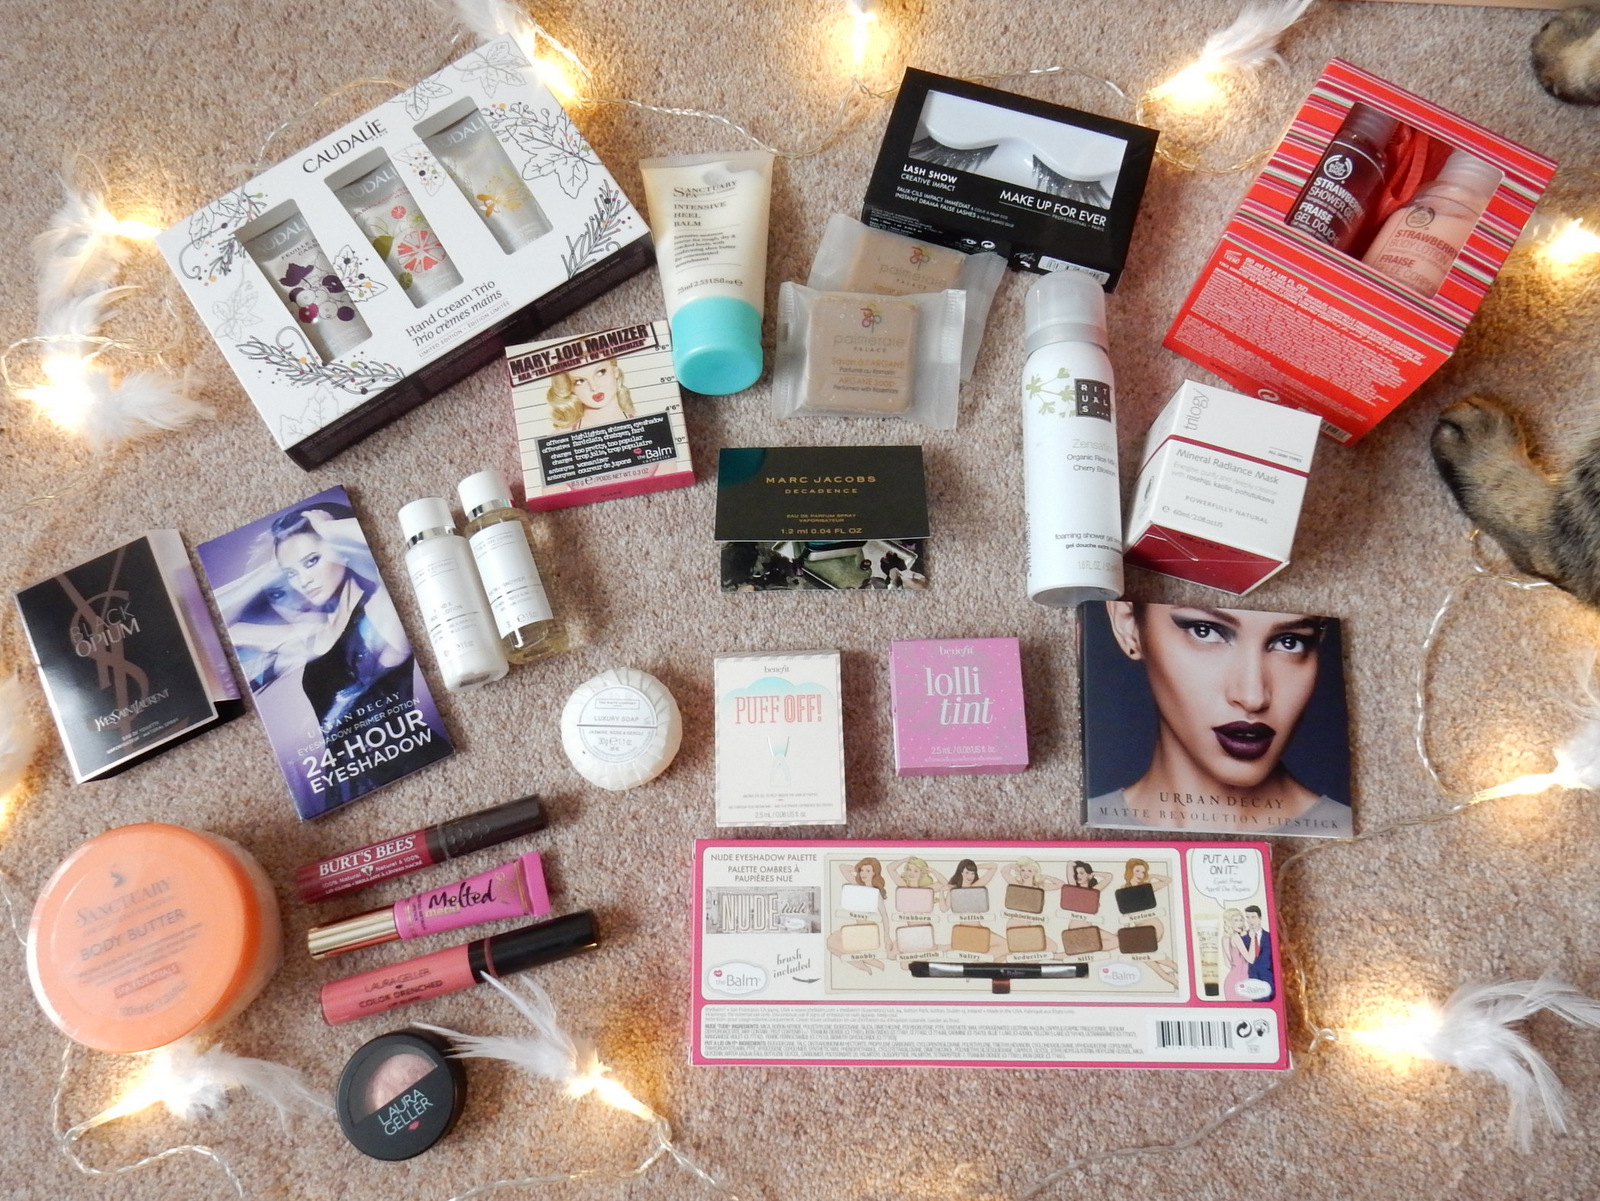 Fashion and makeup giveaway